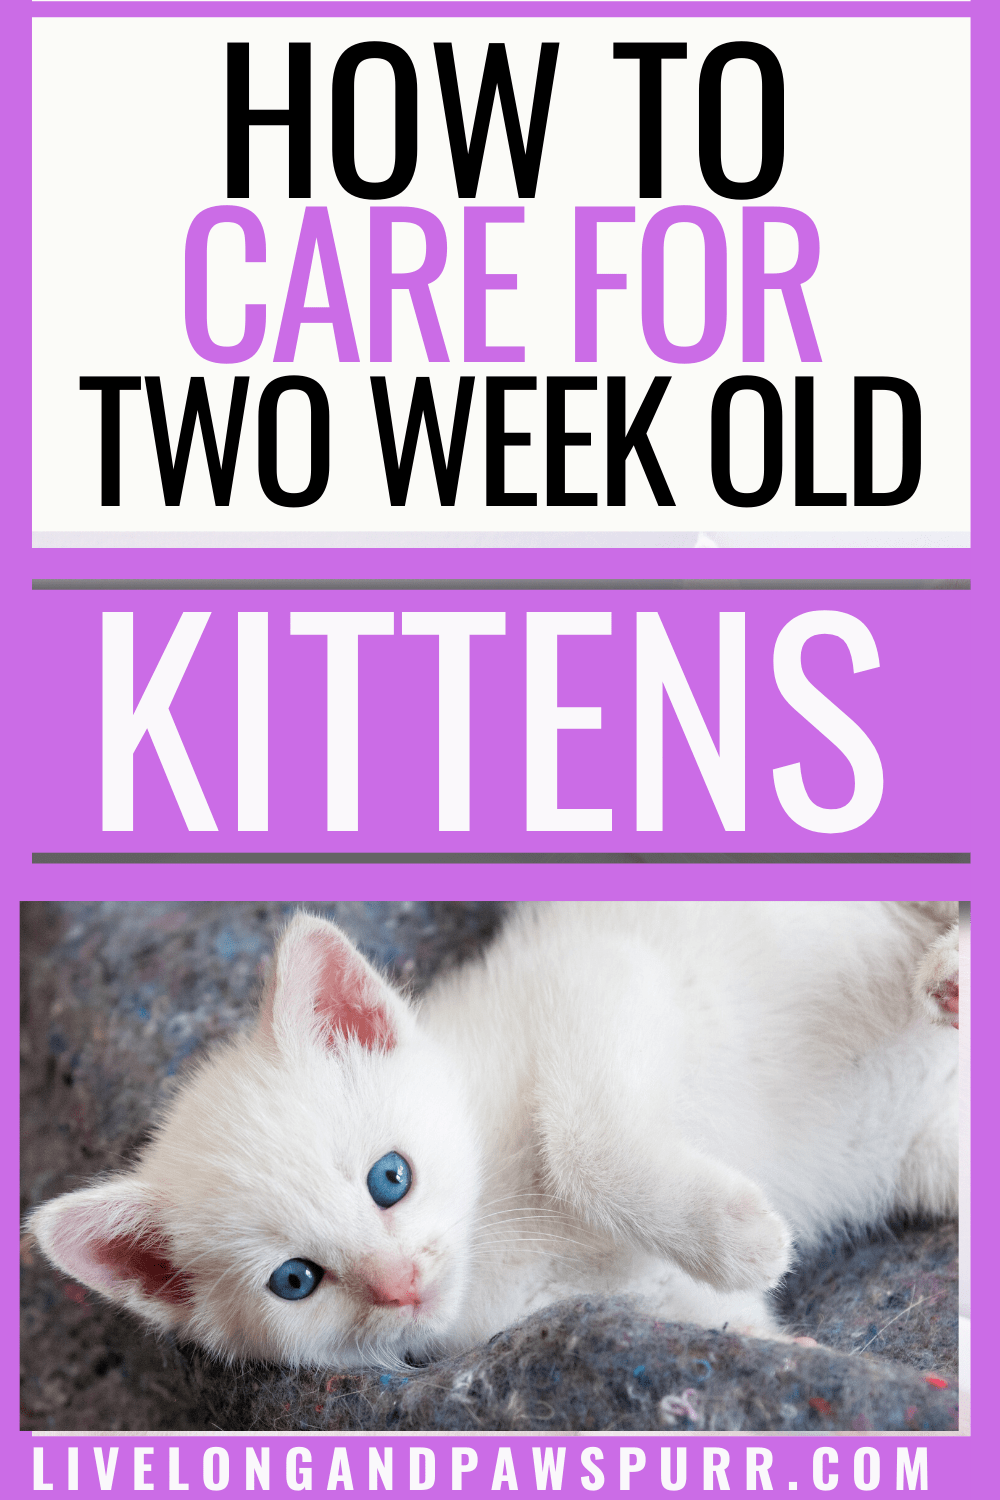 Everything You Need To Know About 2 Week Old Kittens Live Long And Pawspurr In 2020 Kittens Kitten Care Kitten Formula